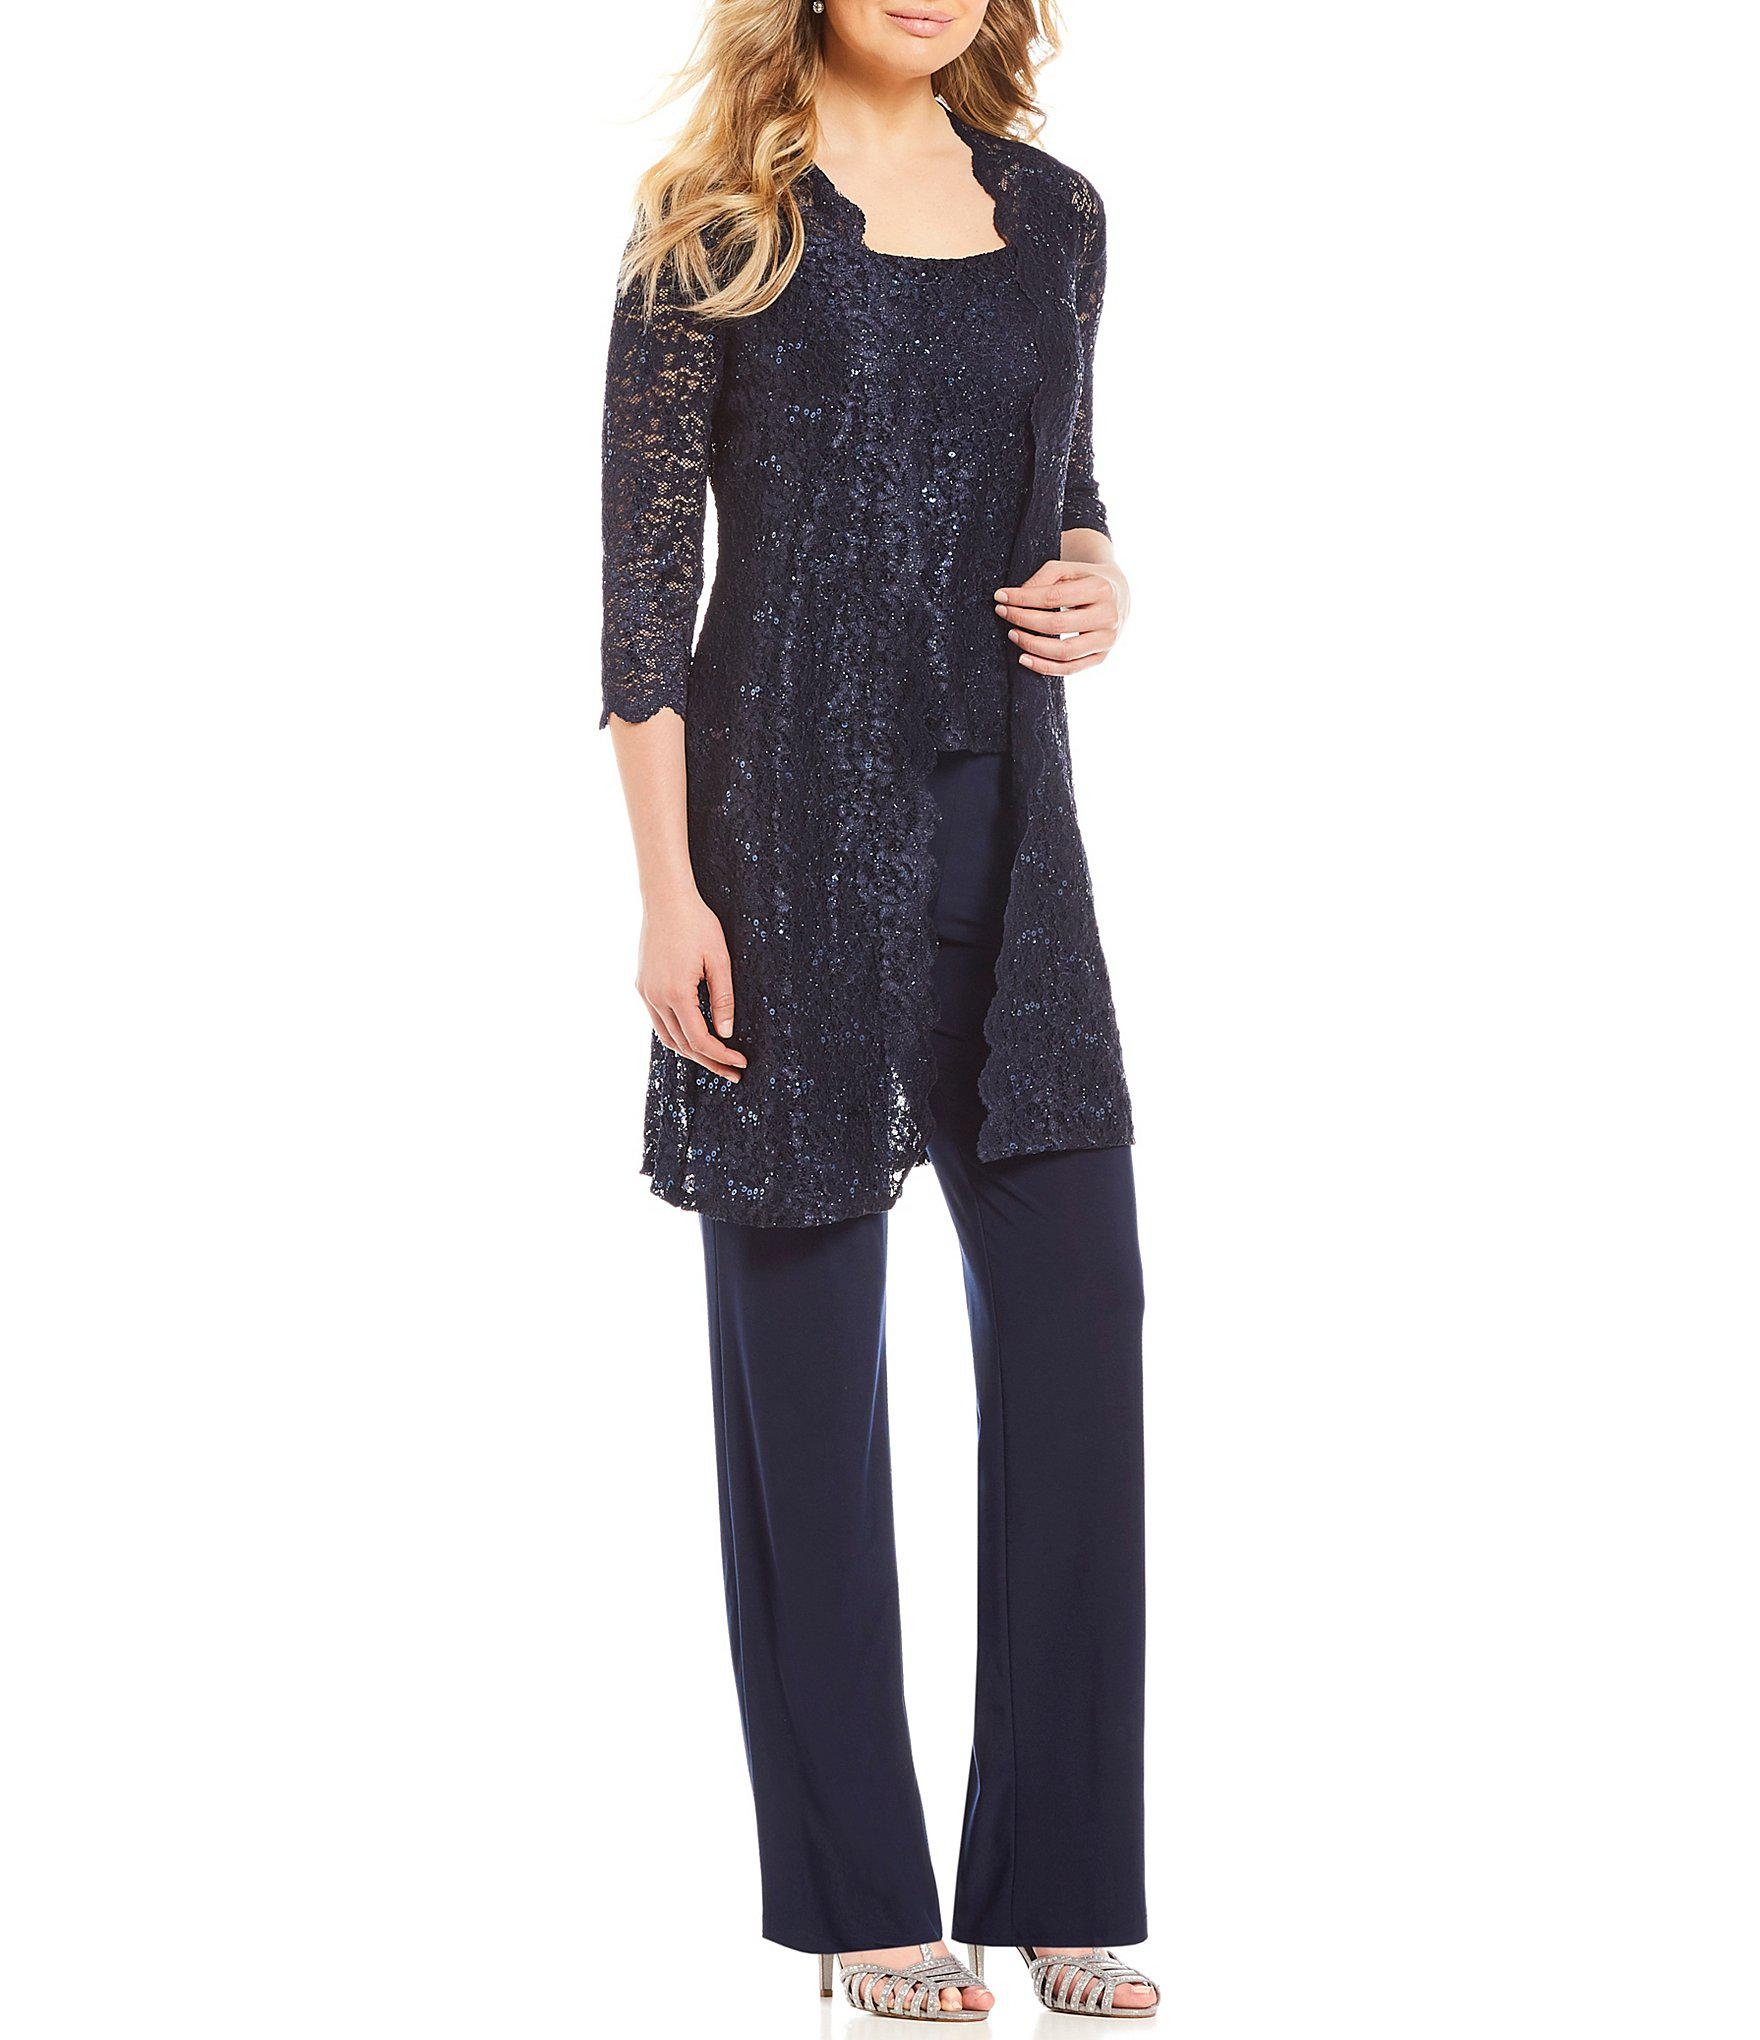 e1c4633738 R   M Richards 3-piece Sequin Glitter Scallop Lace Duster Pant Set ...